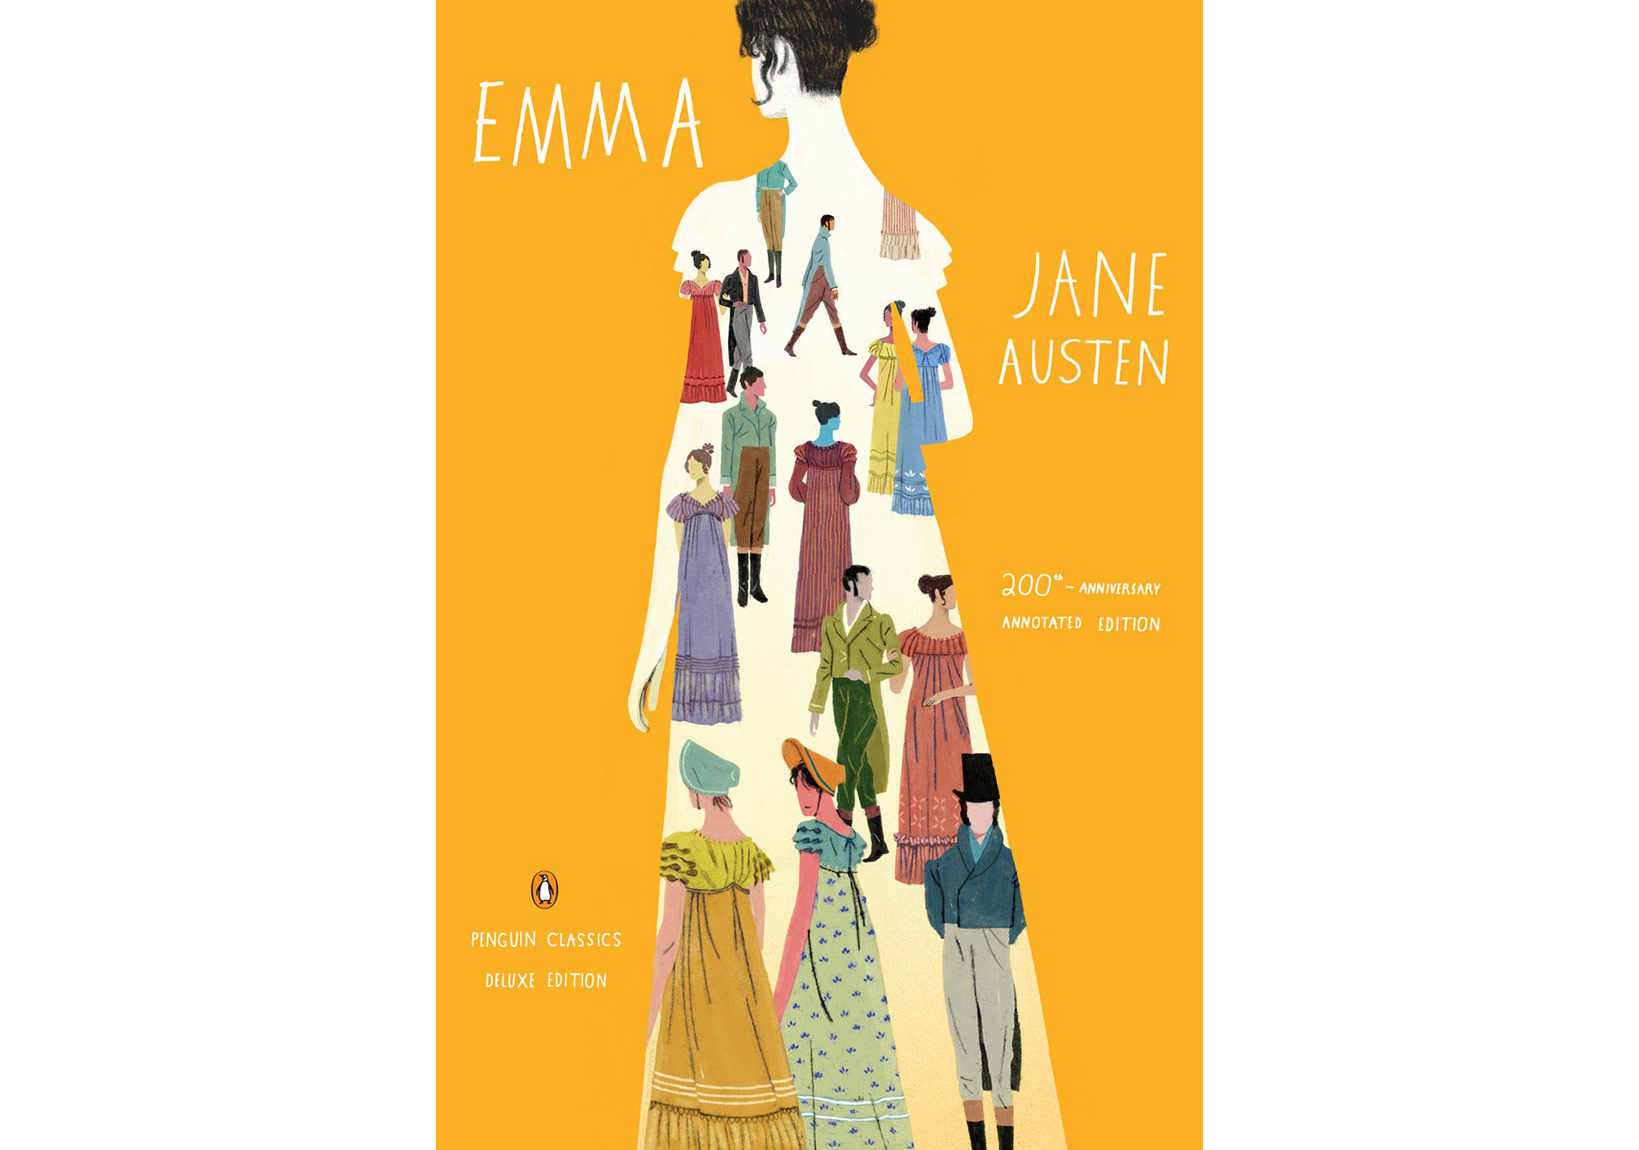 modern reader respond austens presentation mr knightleys guidance emma novel whole By the end of the novel harriet, frank, and jane are all properly accounted for, emma is wiser (though certainly not sadder), and the reader has had the satisfaction of enjoying jane austen at the height of her powers.